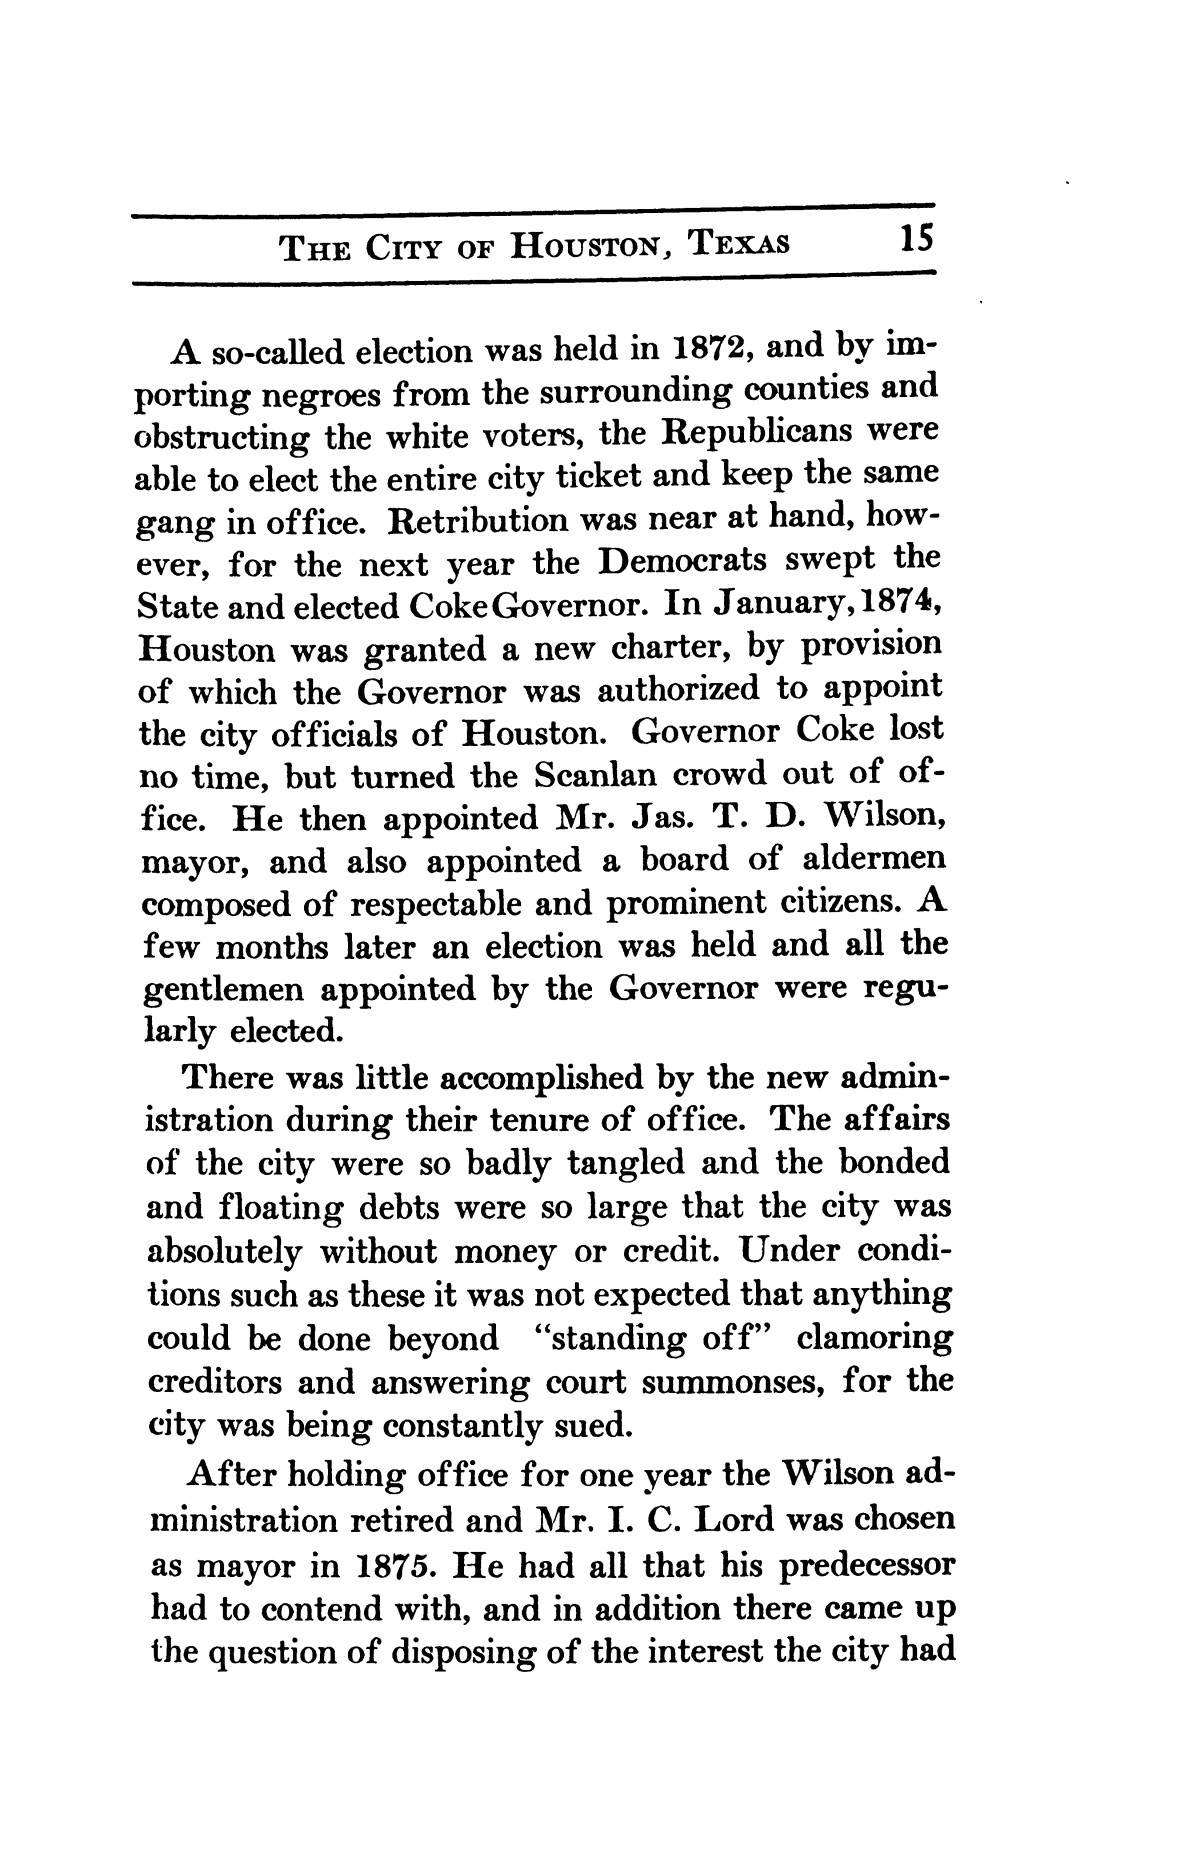 A thumb-nail history of the city of Houston, Texas, from its founding in 1836 to the year 1912                                                                                                      15